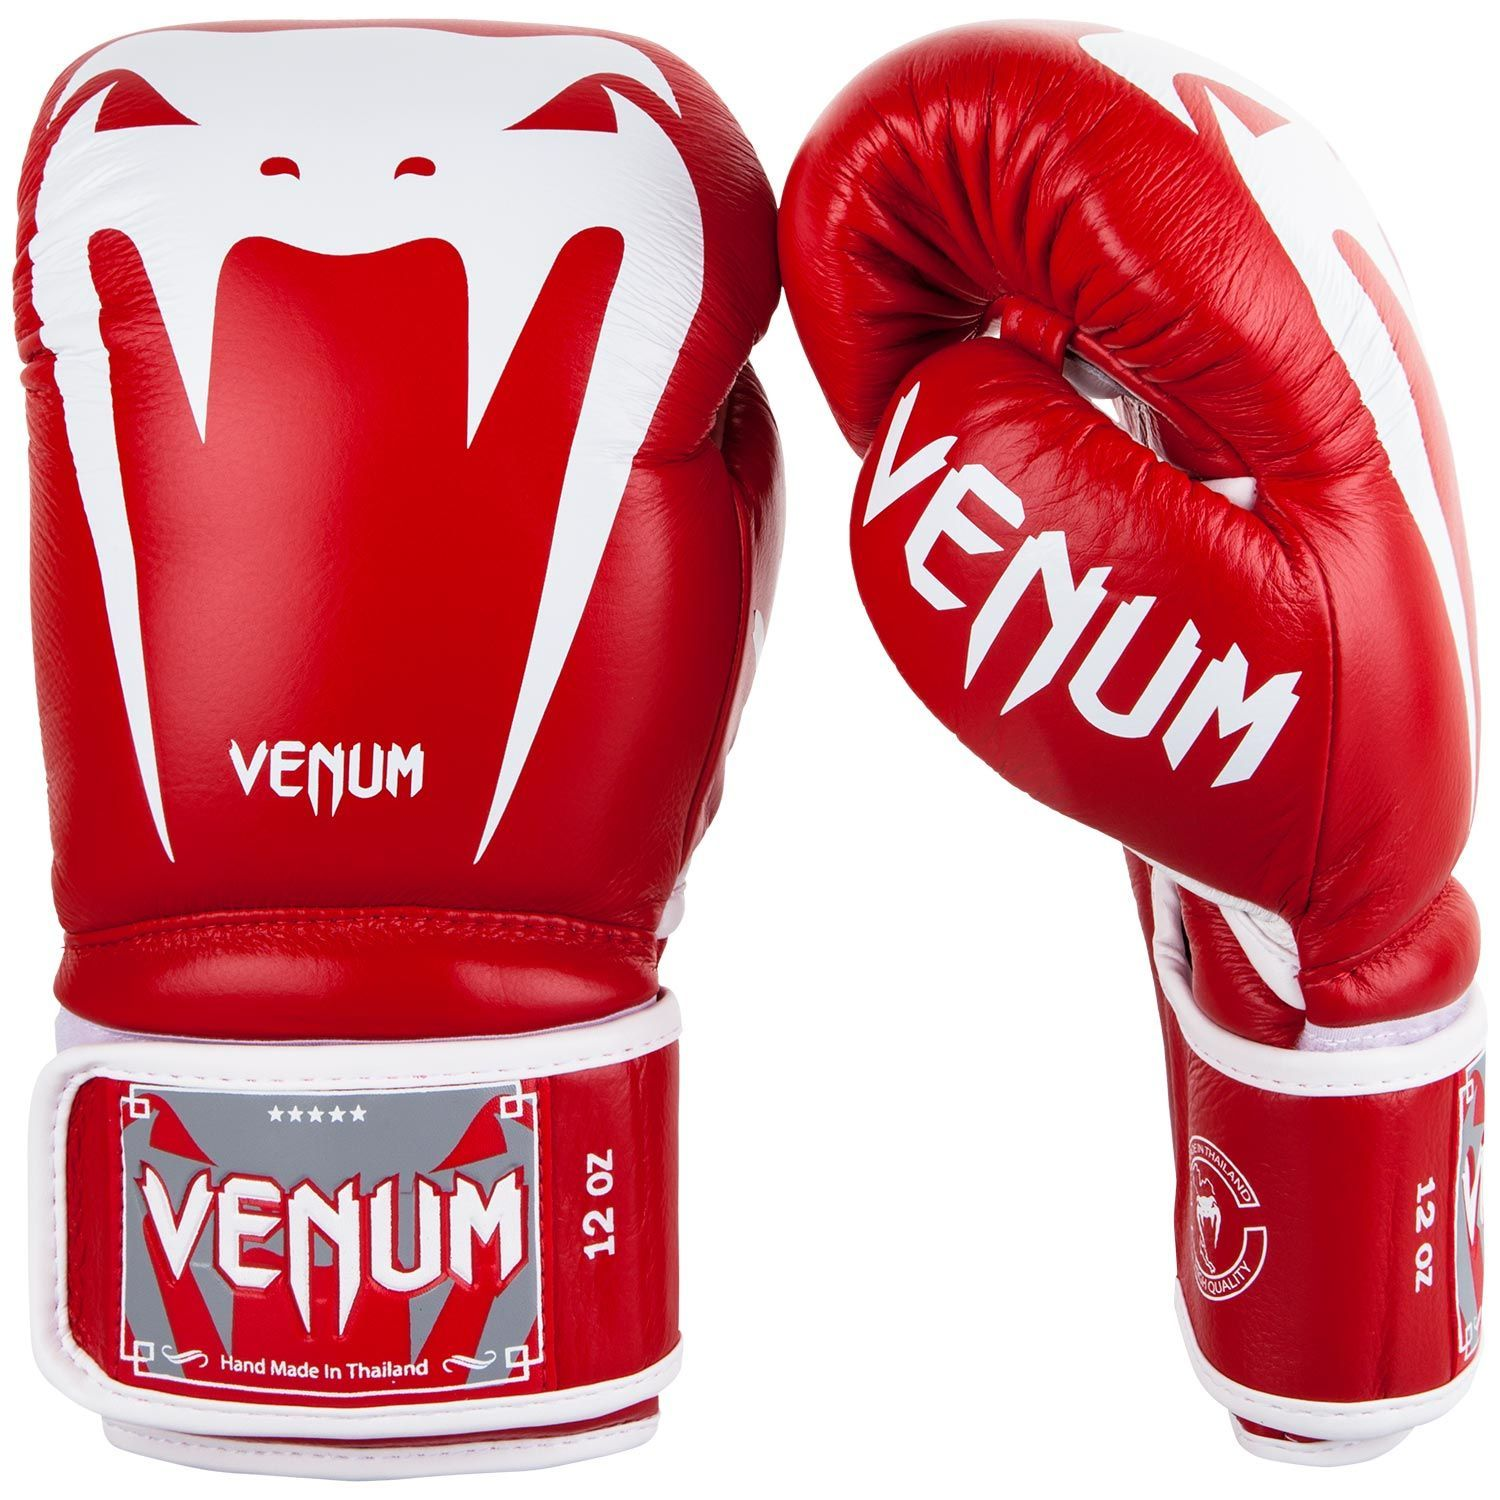 Venum Giant 3.0 Boxing Gloves - Red